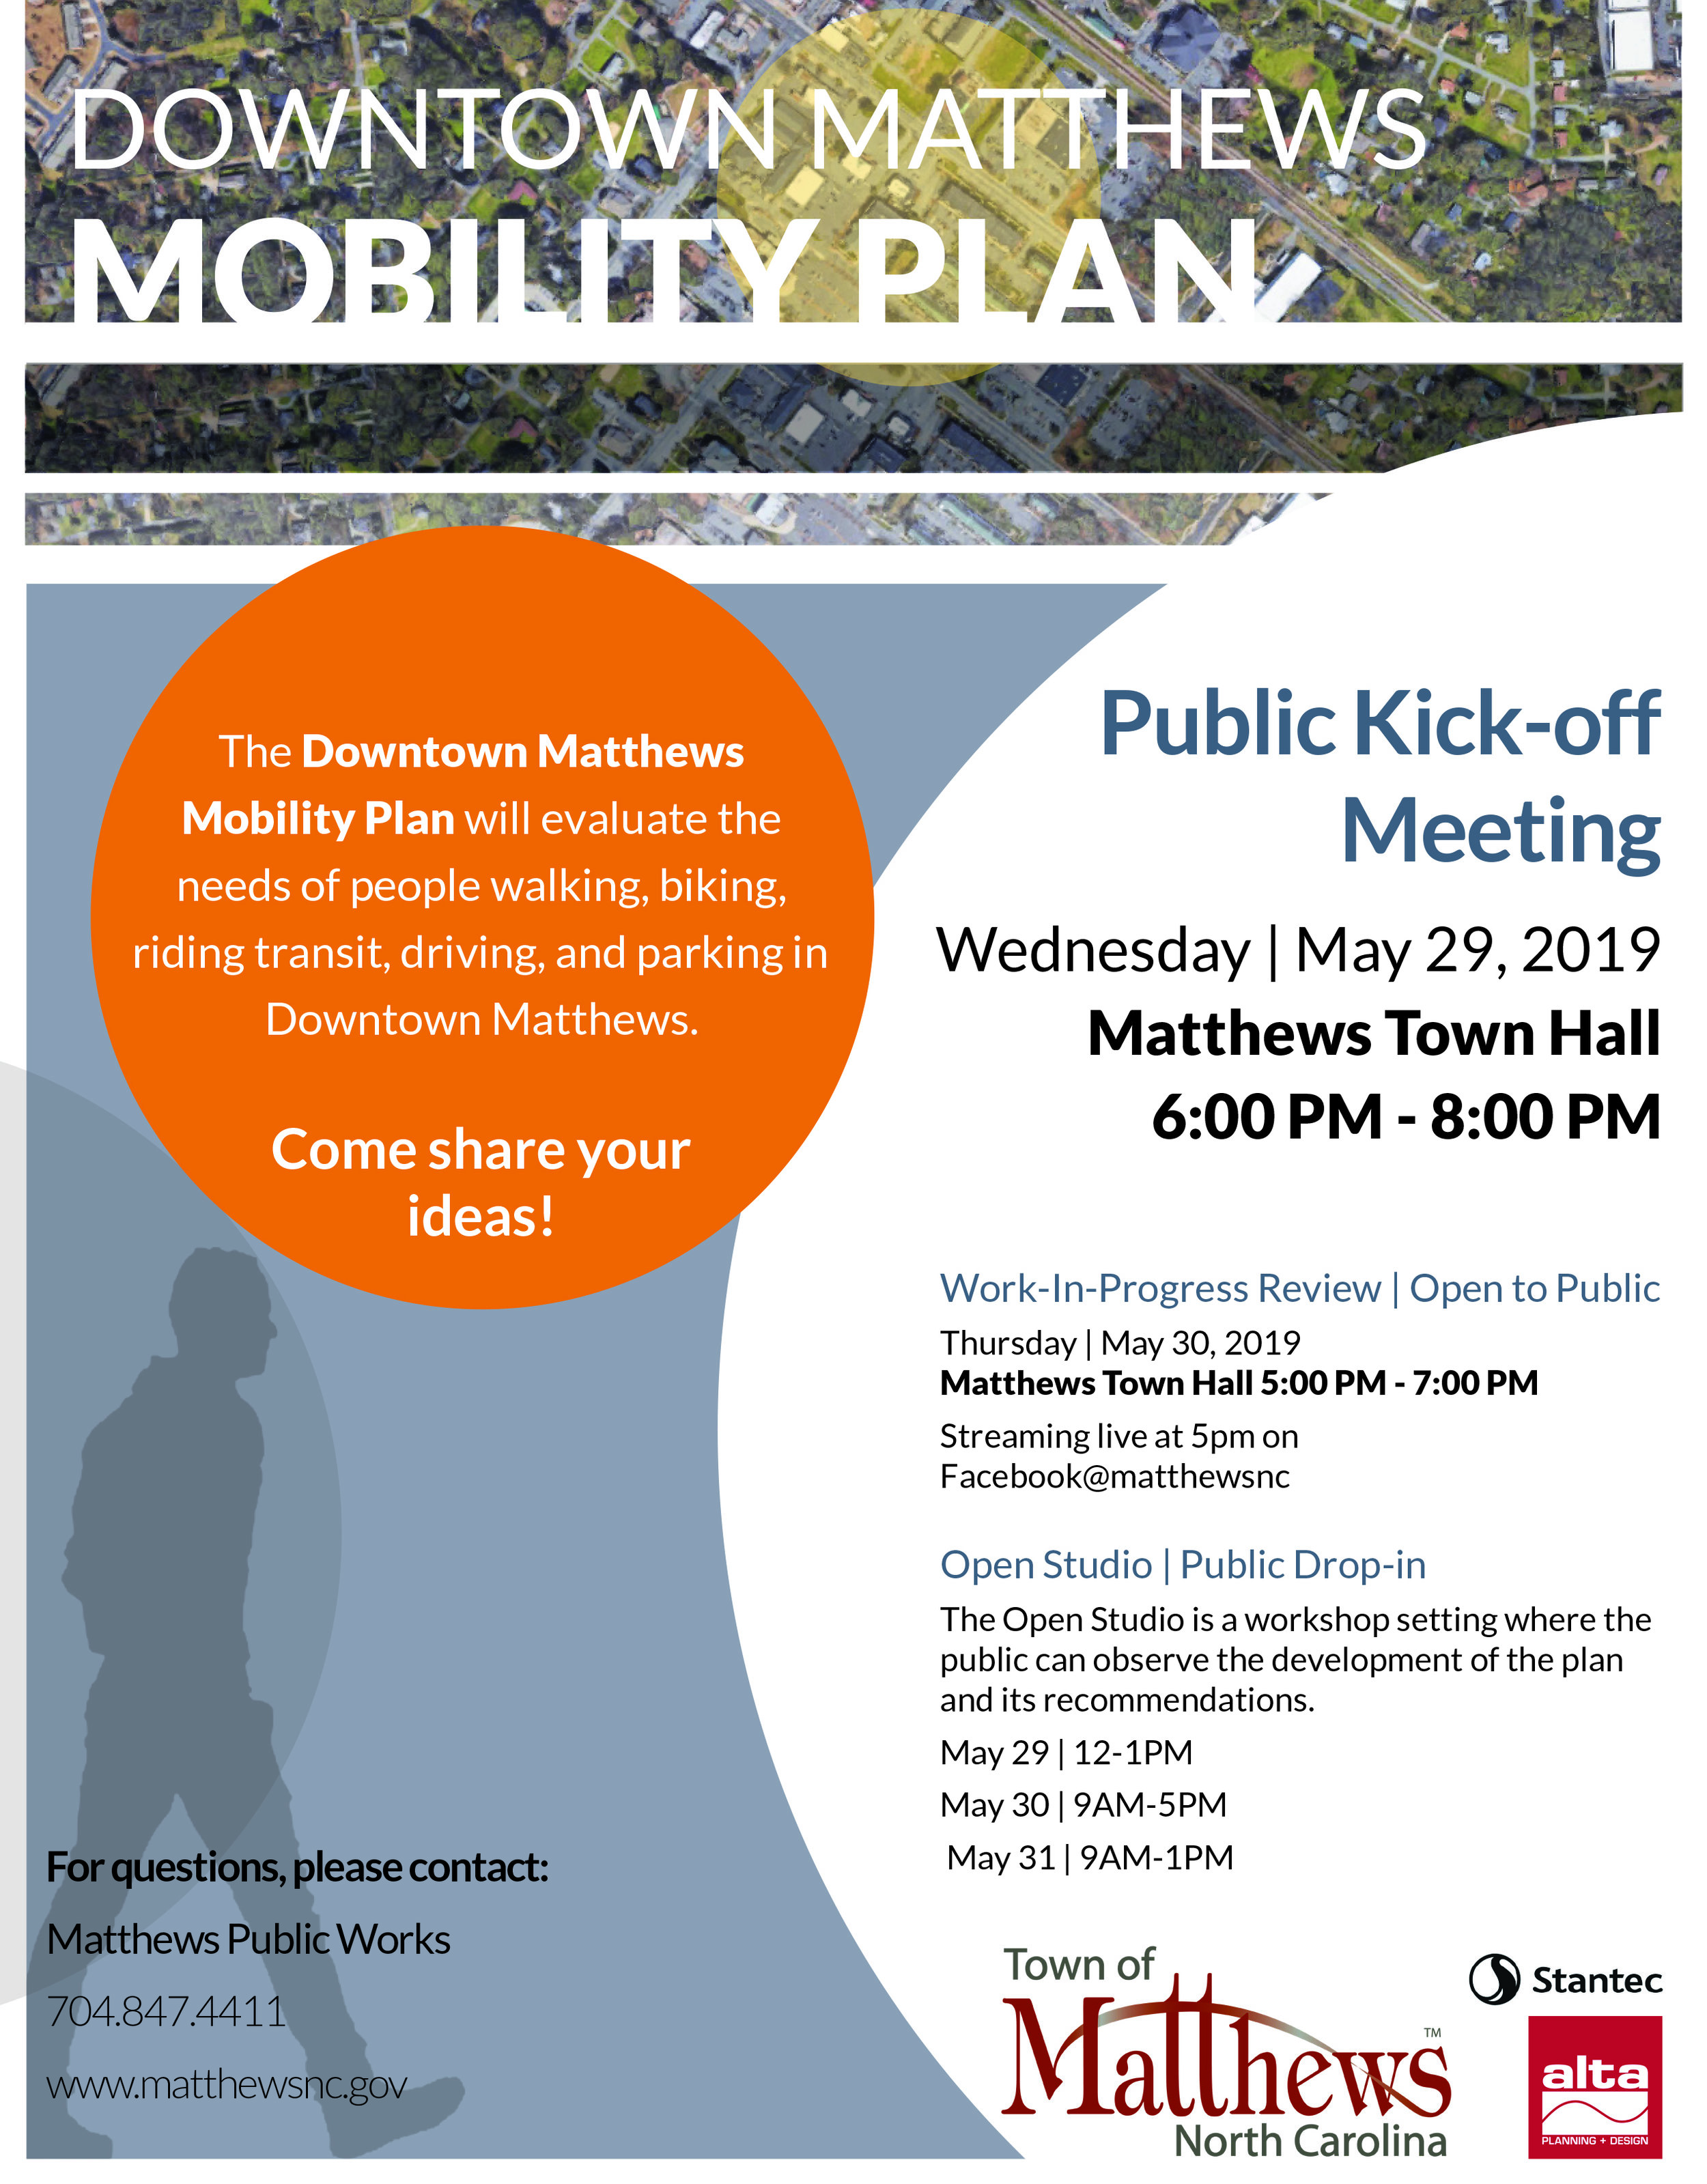 If you haven't made it to a Mobility meeting, there are still a few chances!